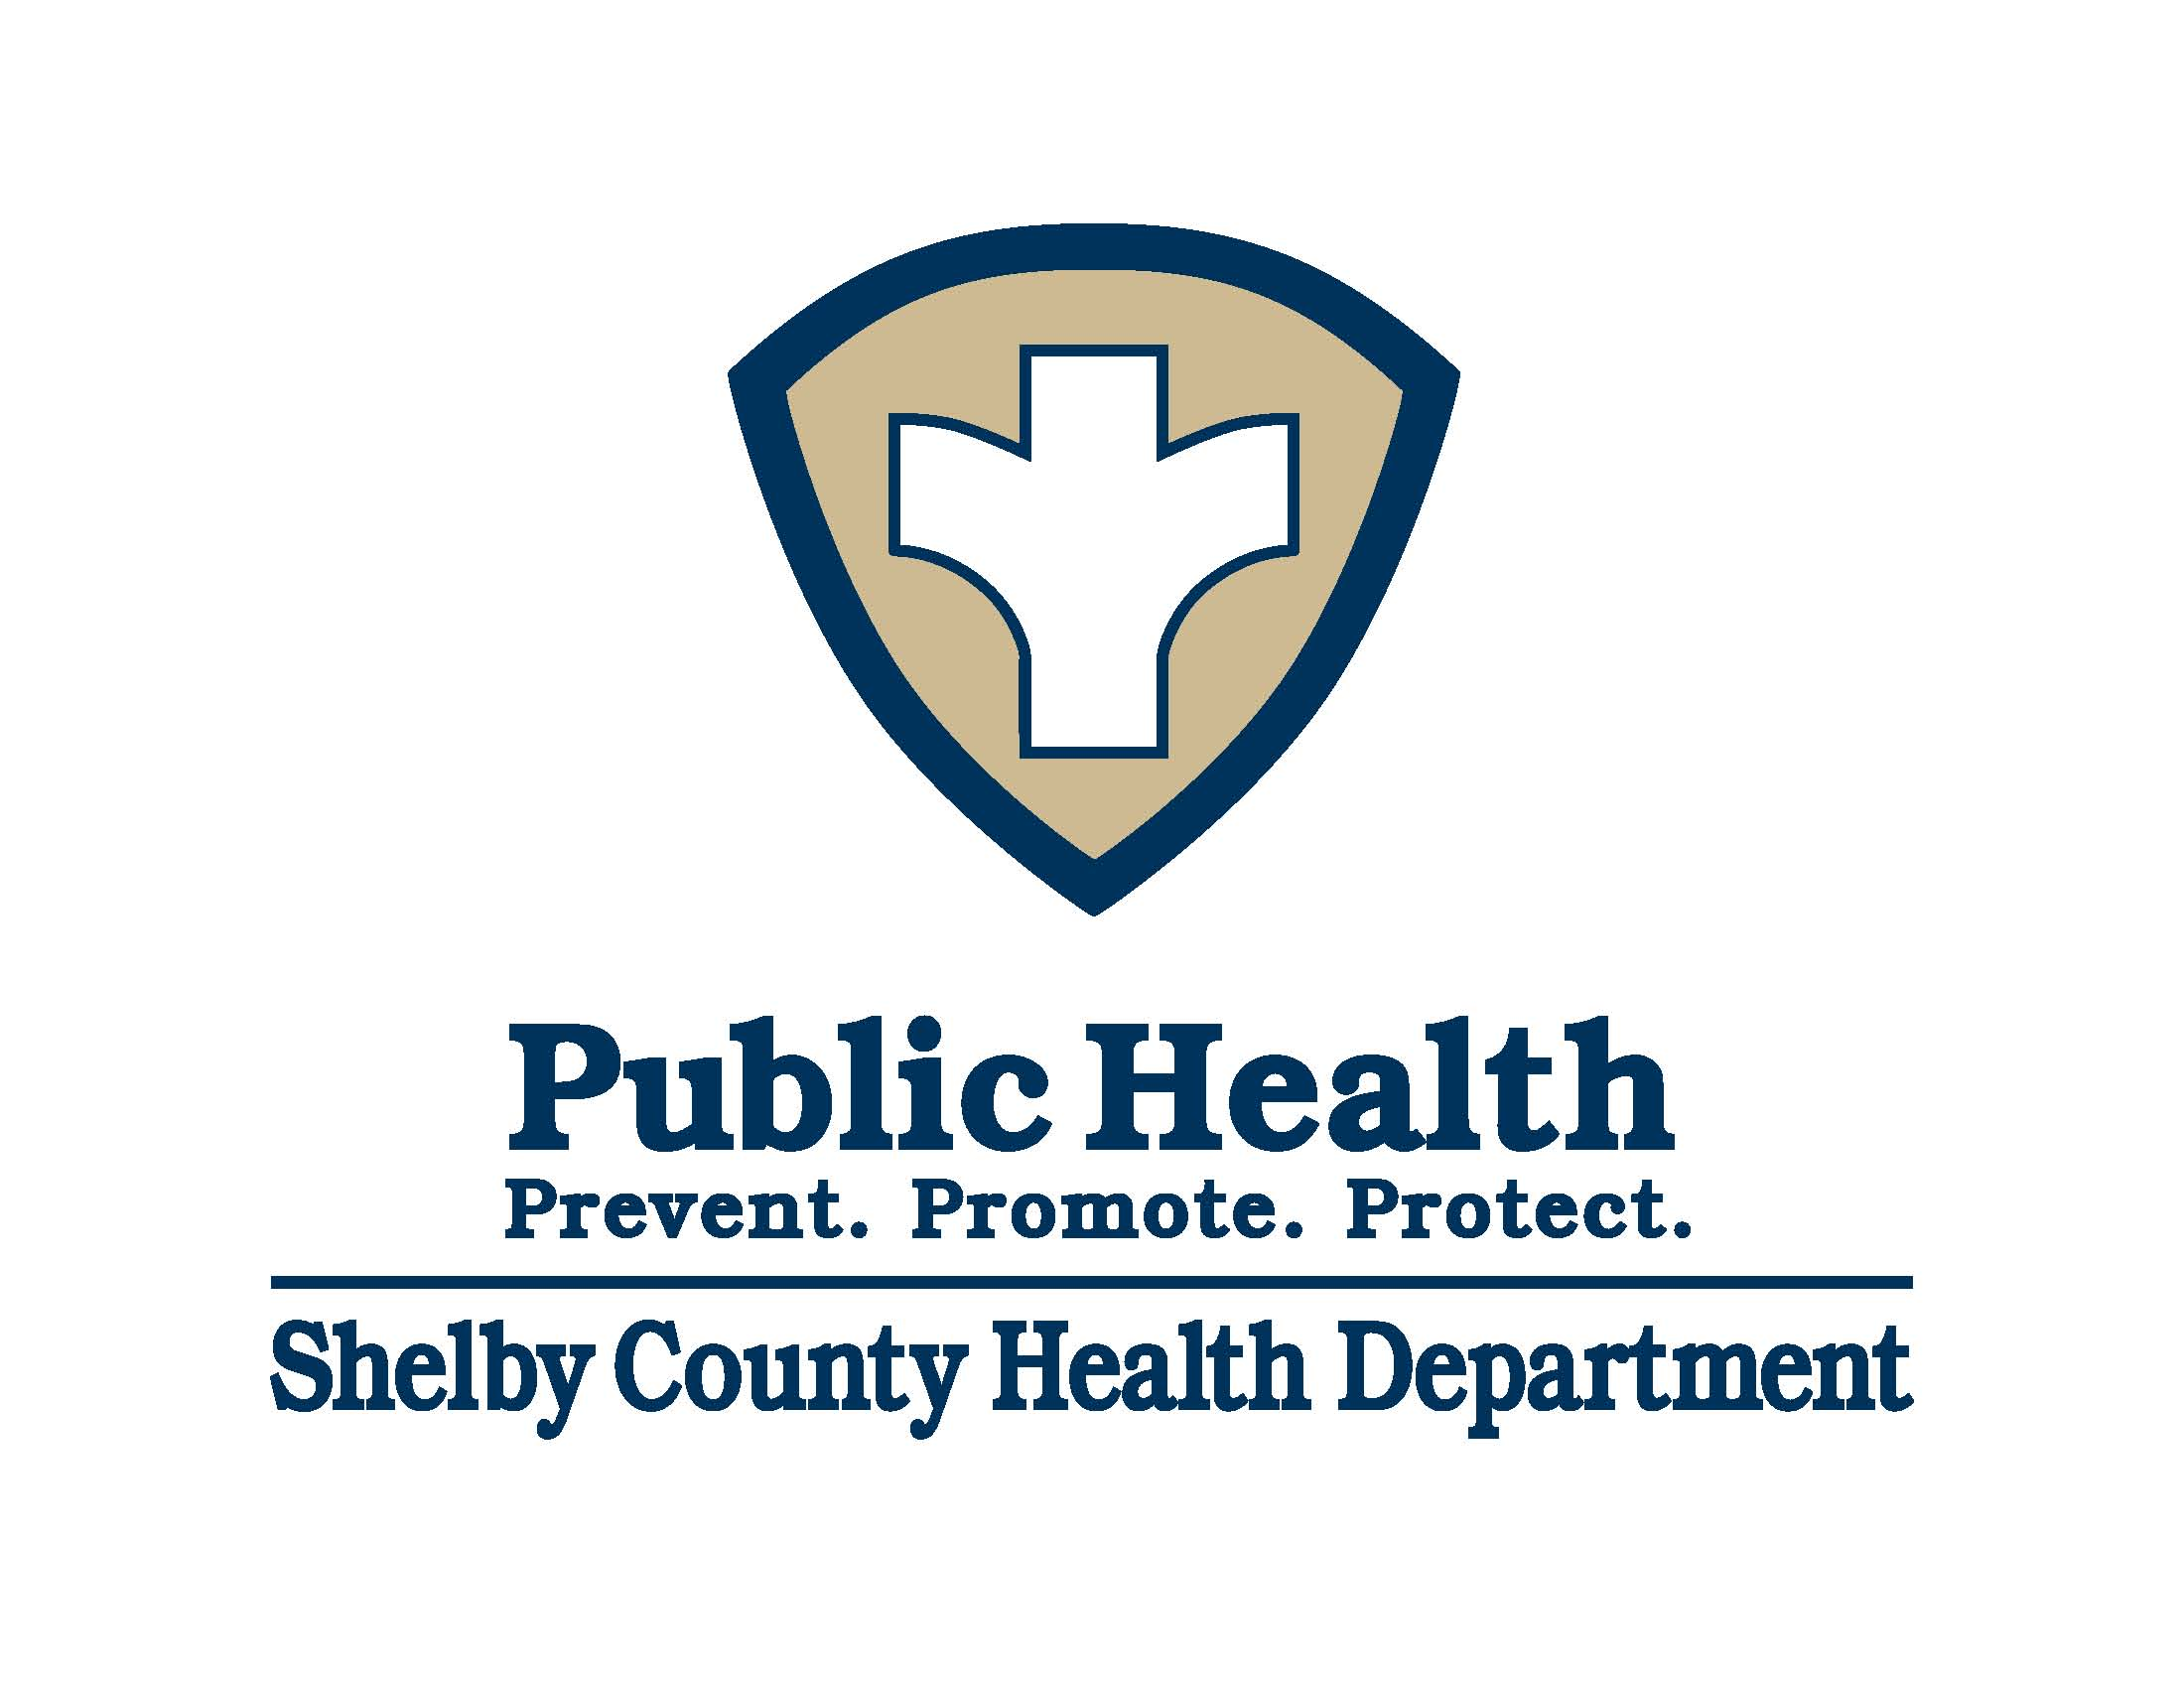 Shelby county health dept